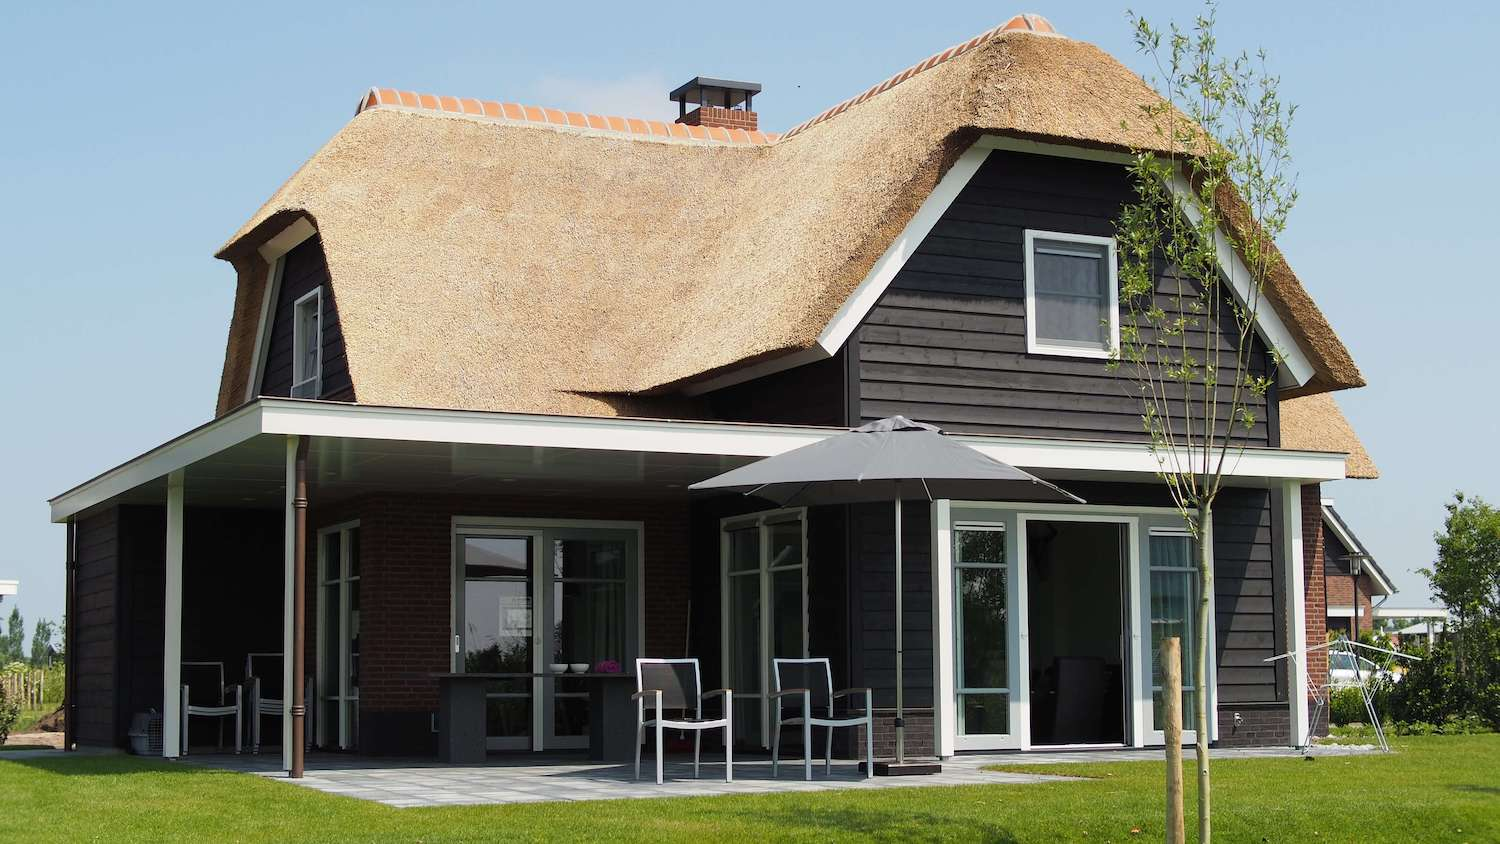 black-and-brown-wooden-house-1105754 (1)